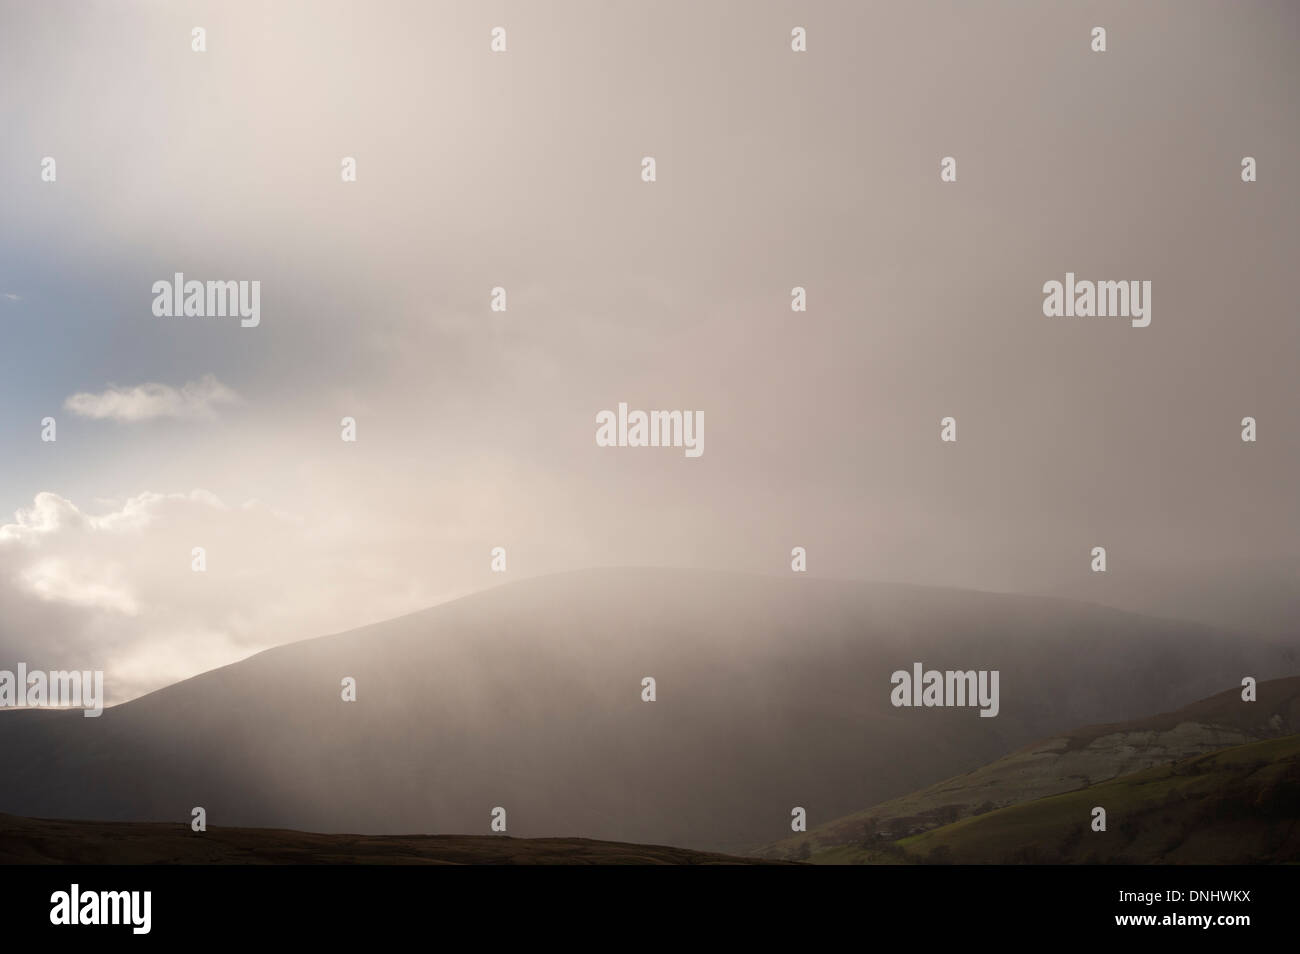 Wintery shower falling in hills, Cumbria, UK. - Stock Image